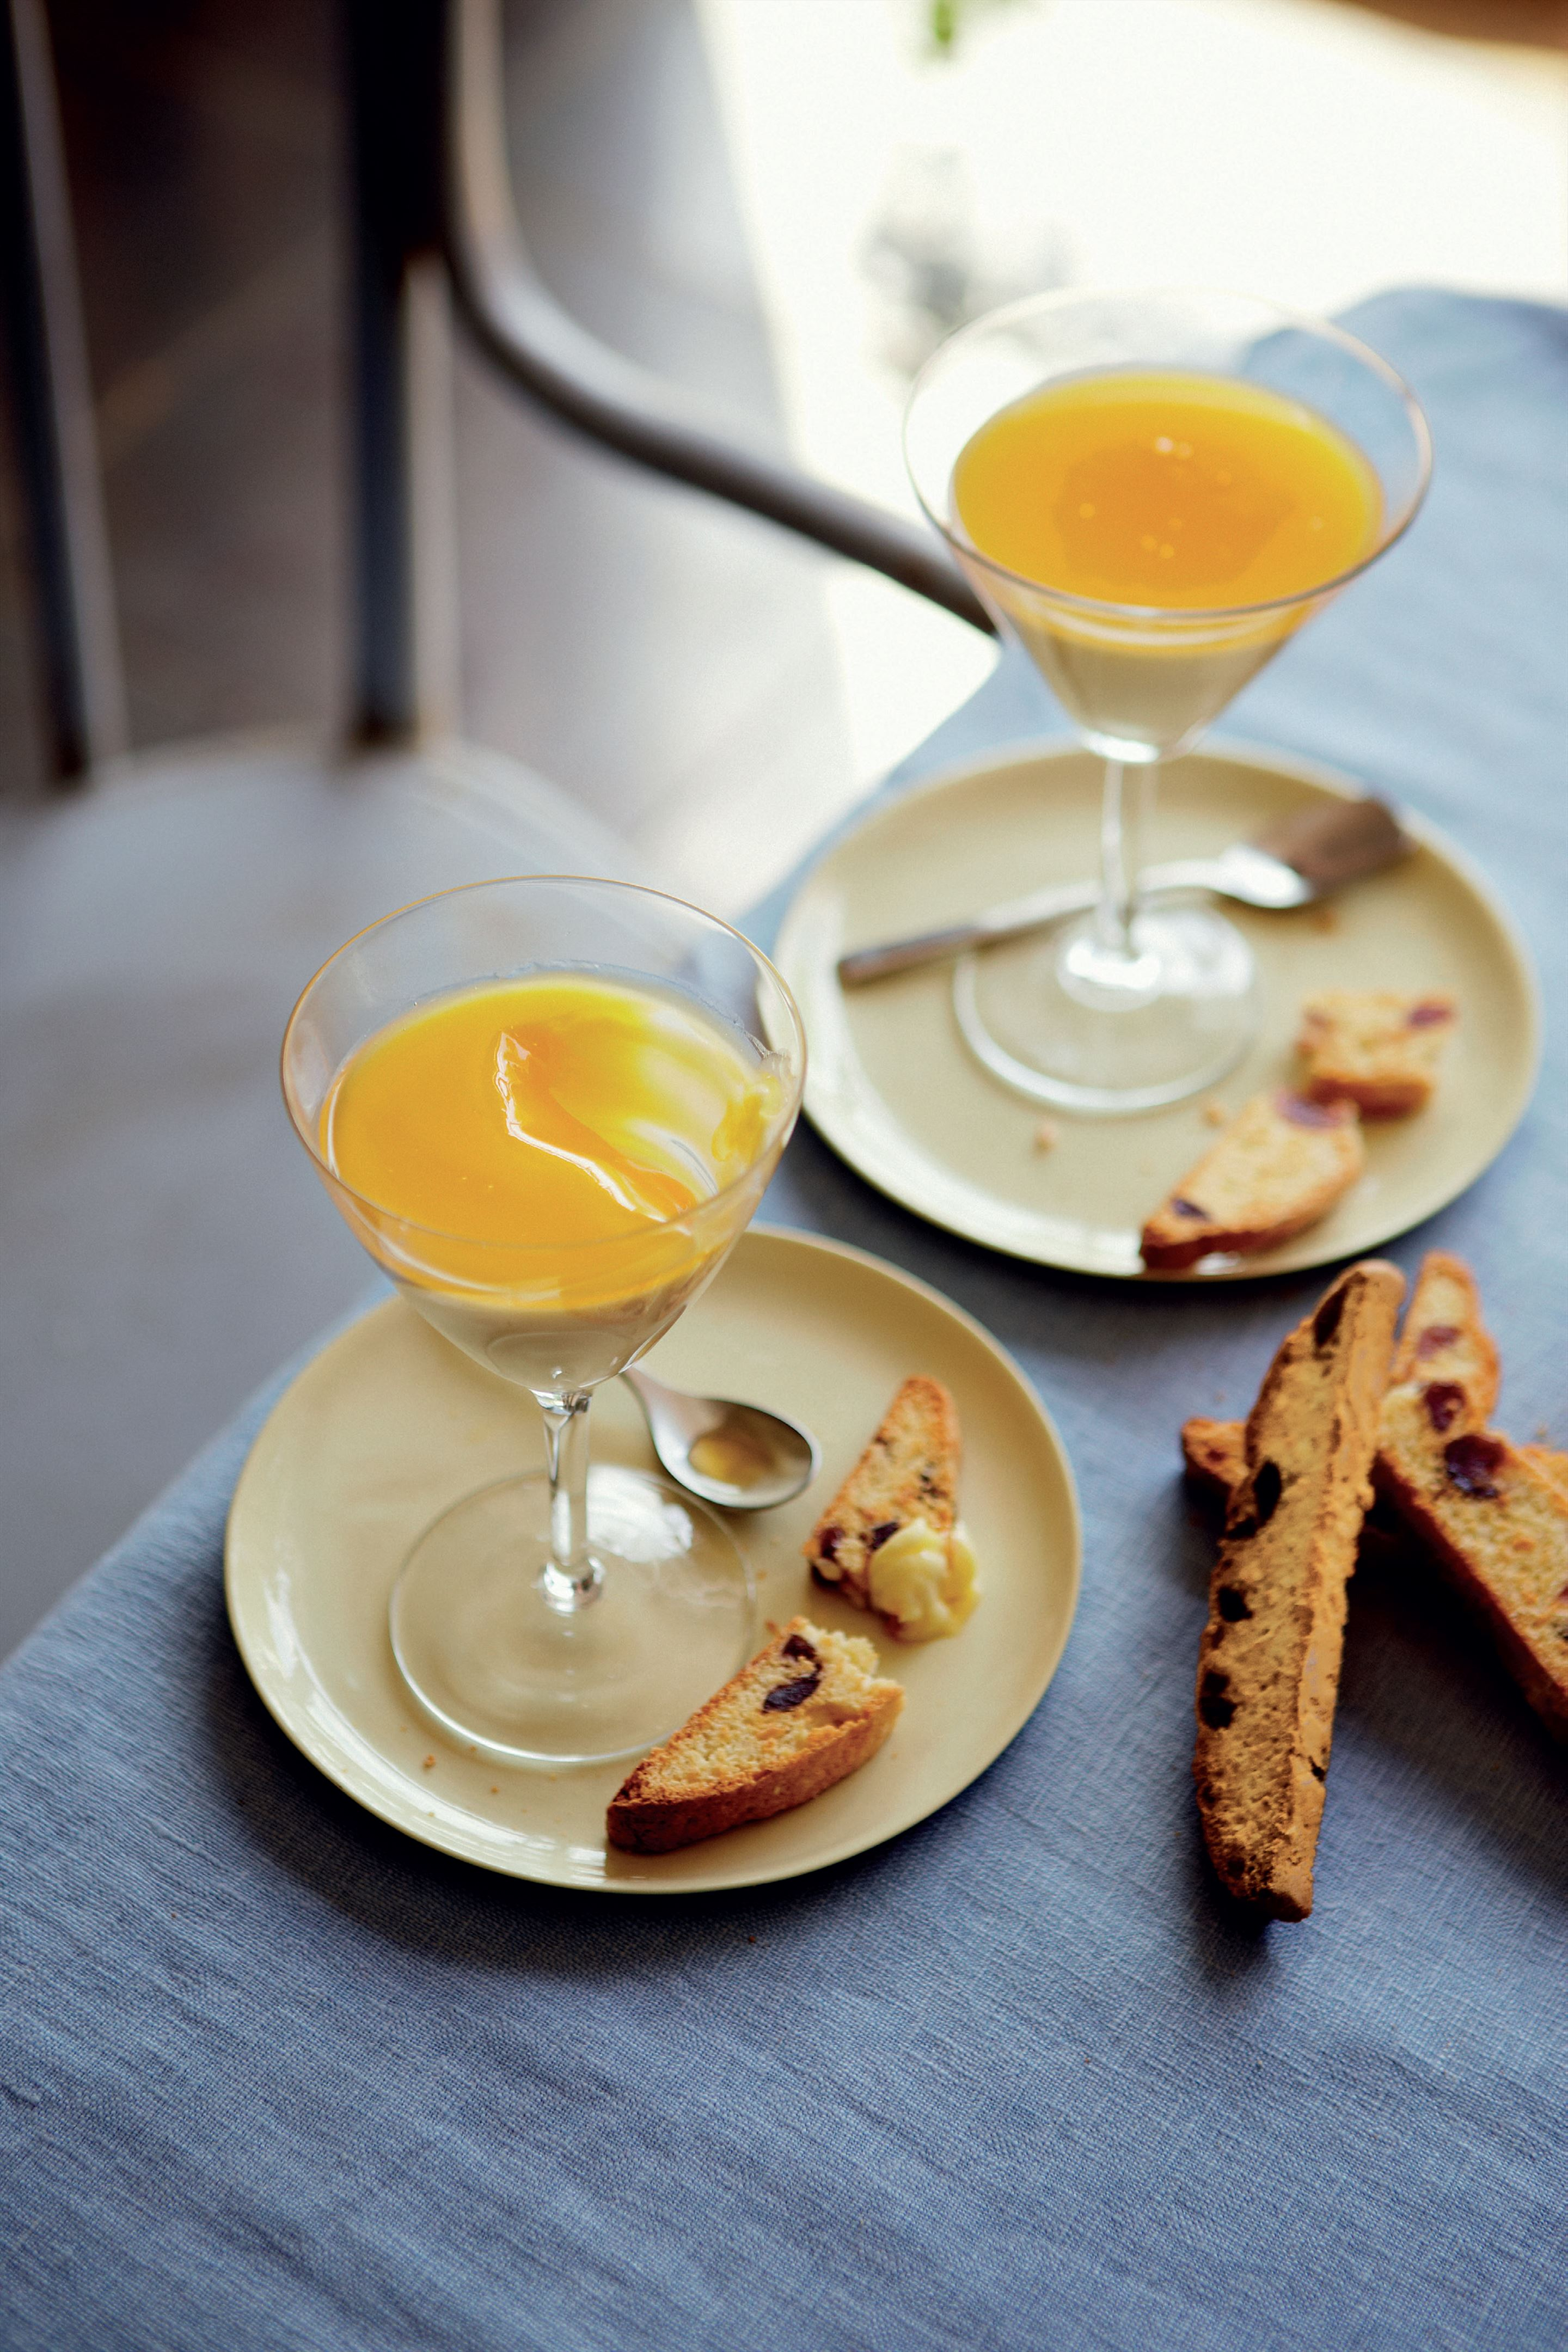 Passion fruit crème with coconut and cherry biscotti